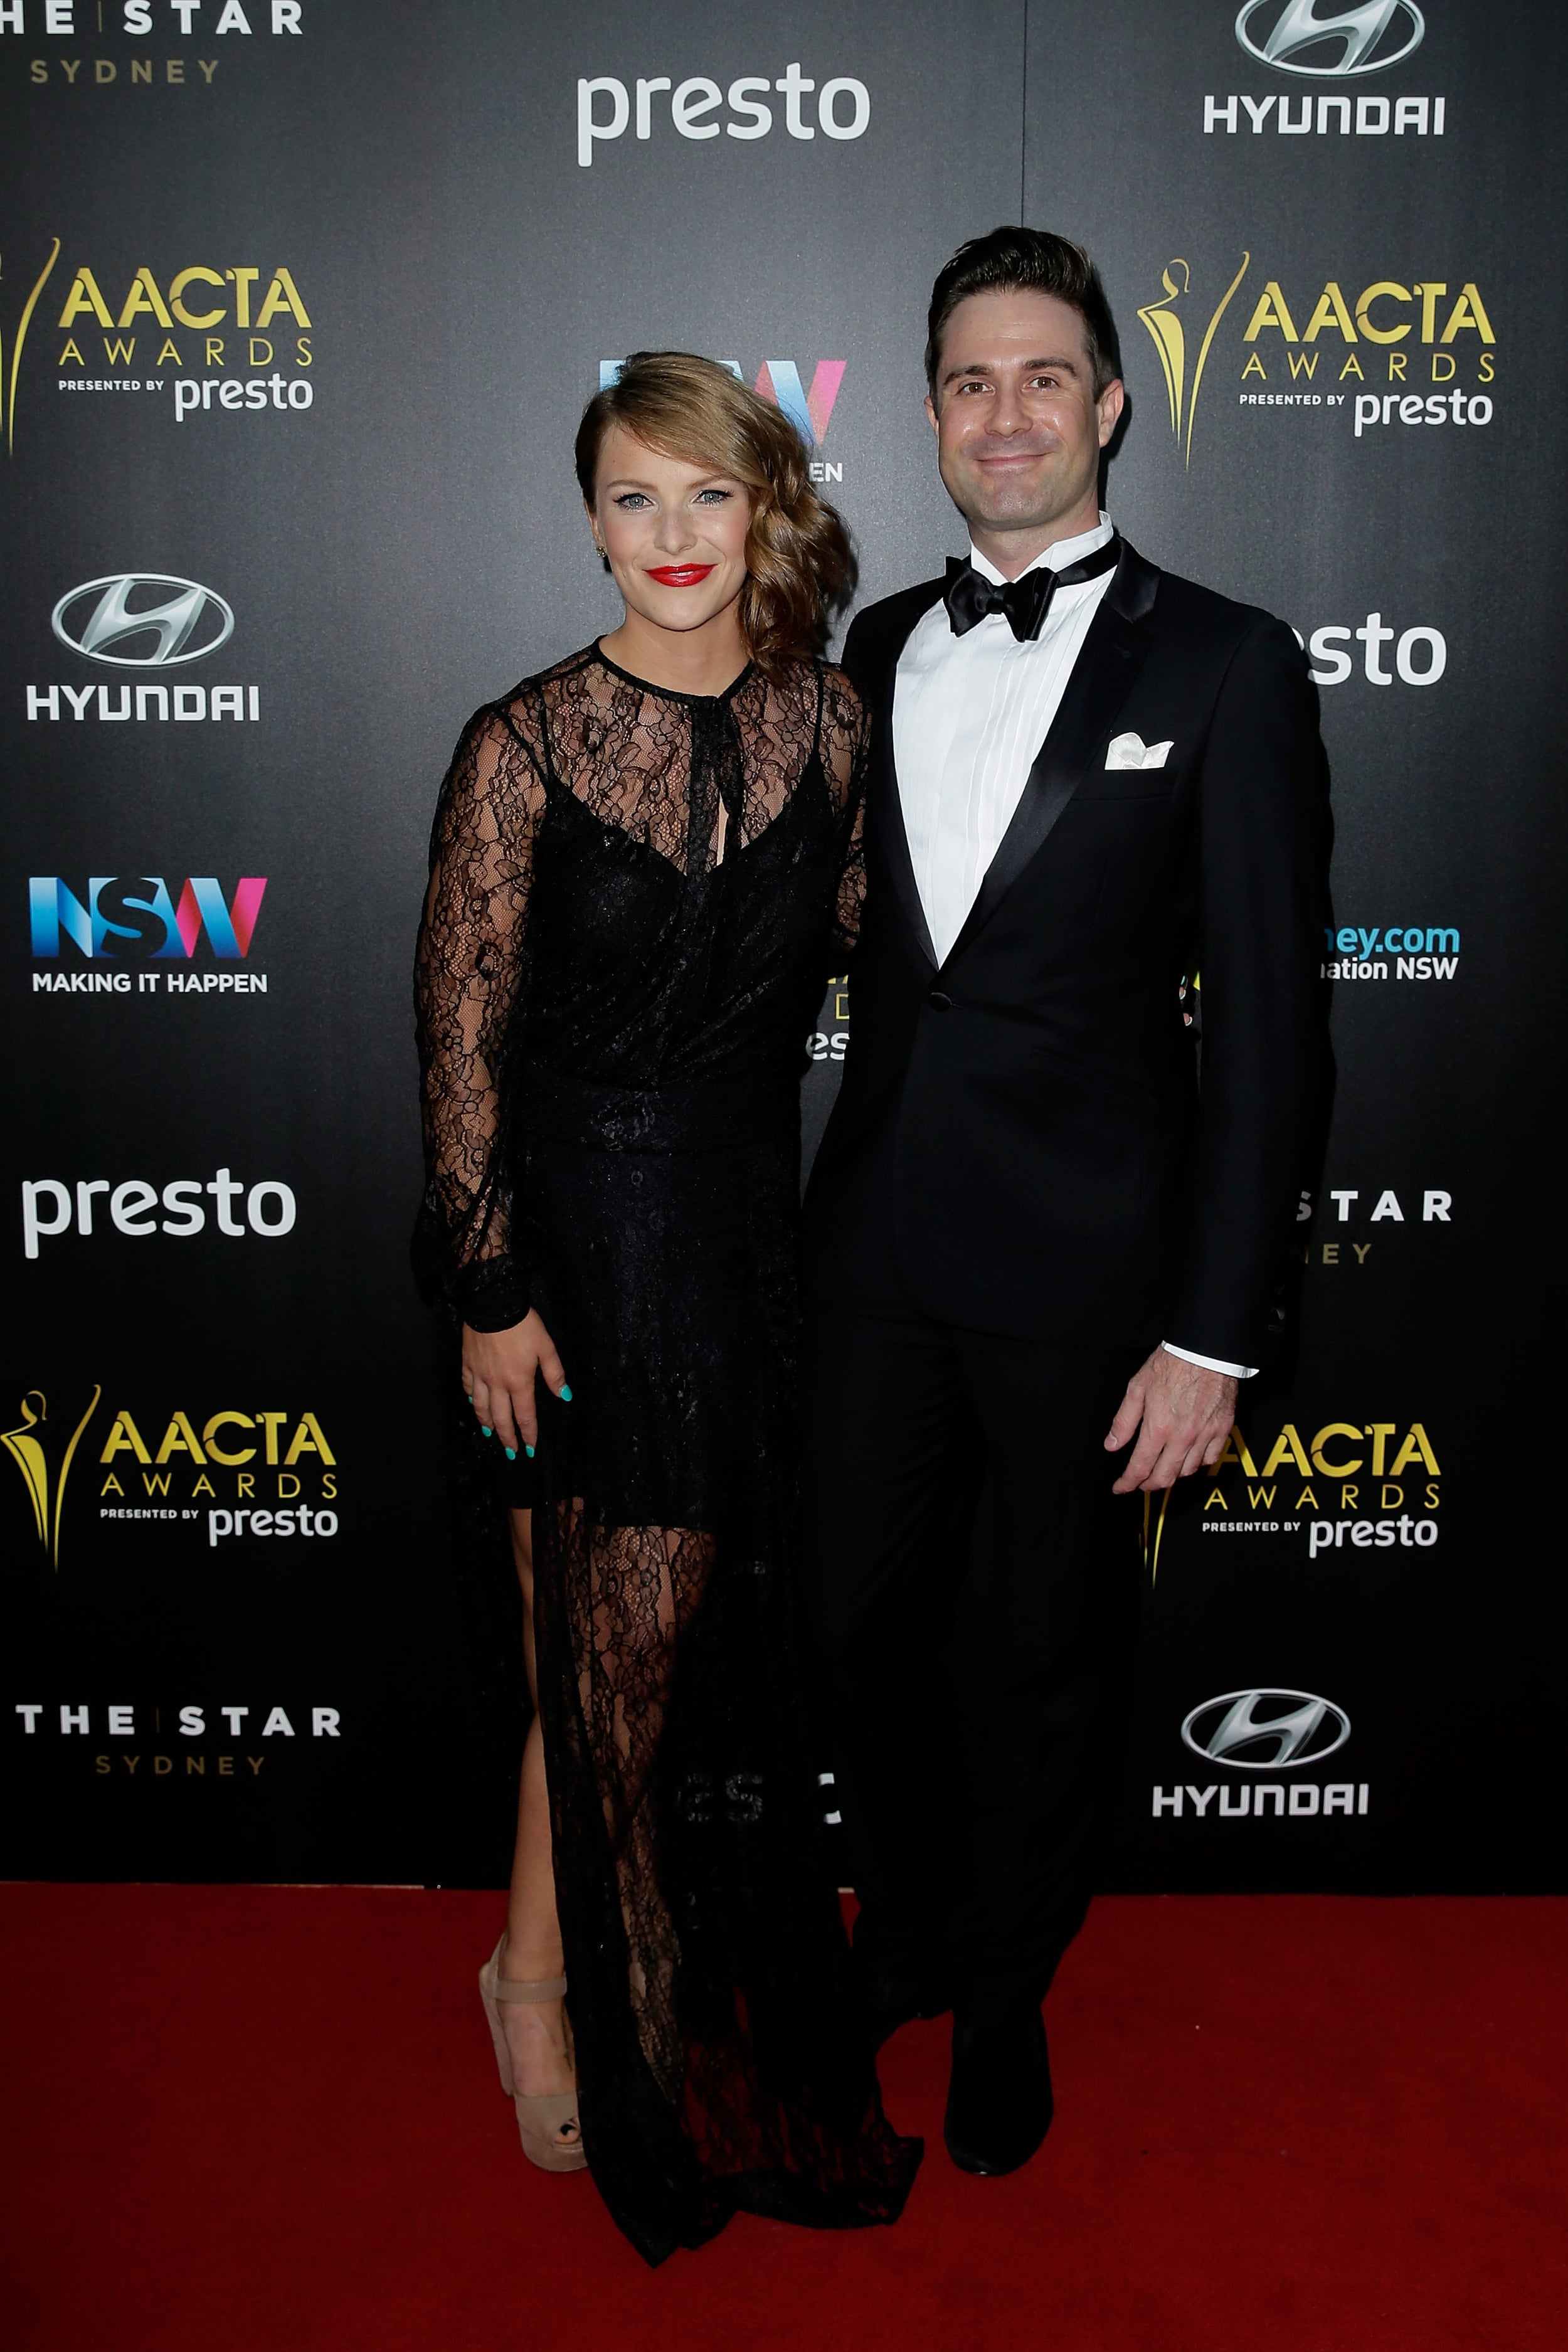 Maree Lowes and Michael Balk arrive ahead of the 5th AACTA Awards Presented by Presto at The Star on December 9, 2015 in Sydney, Australia. (Photo by Mark Metcalfe/Getty Images for AFI).